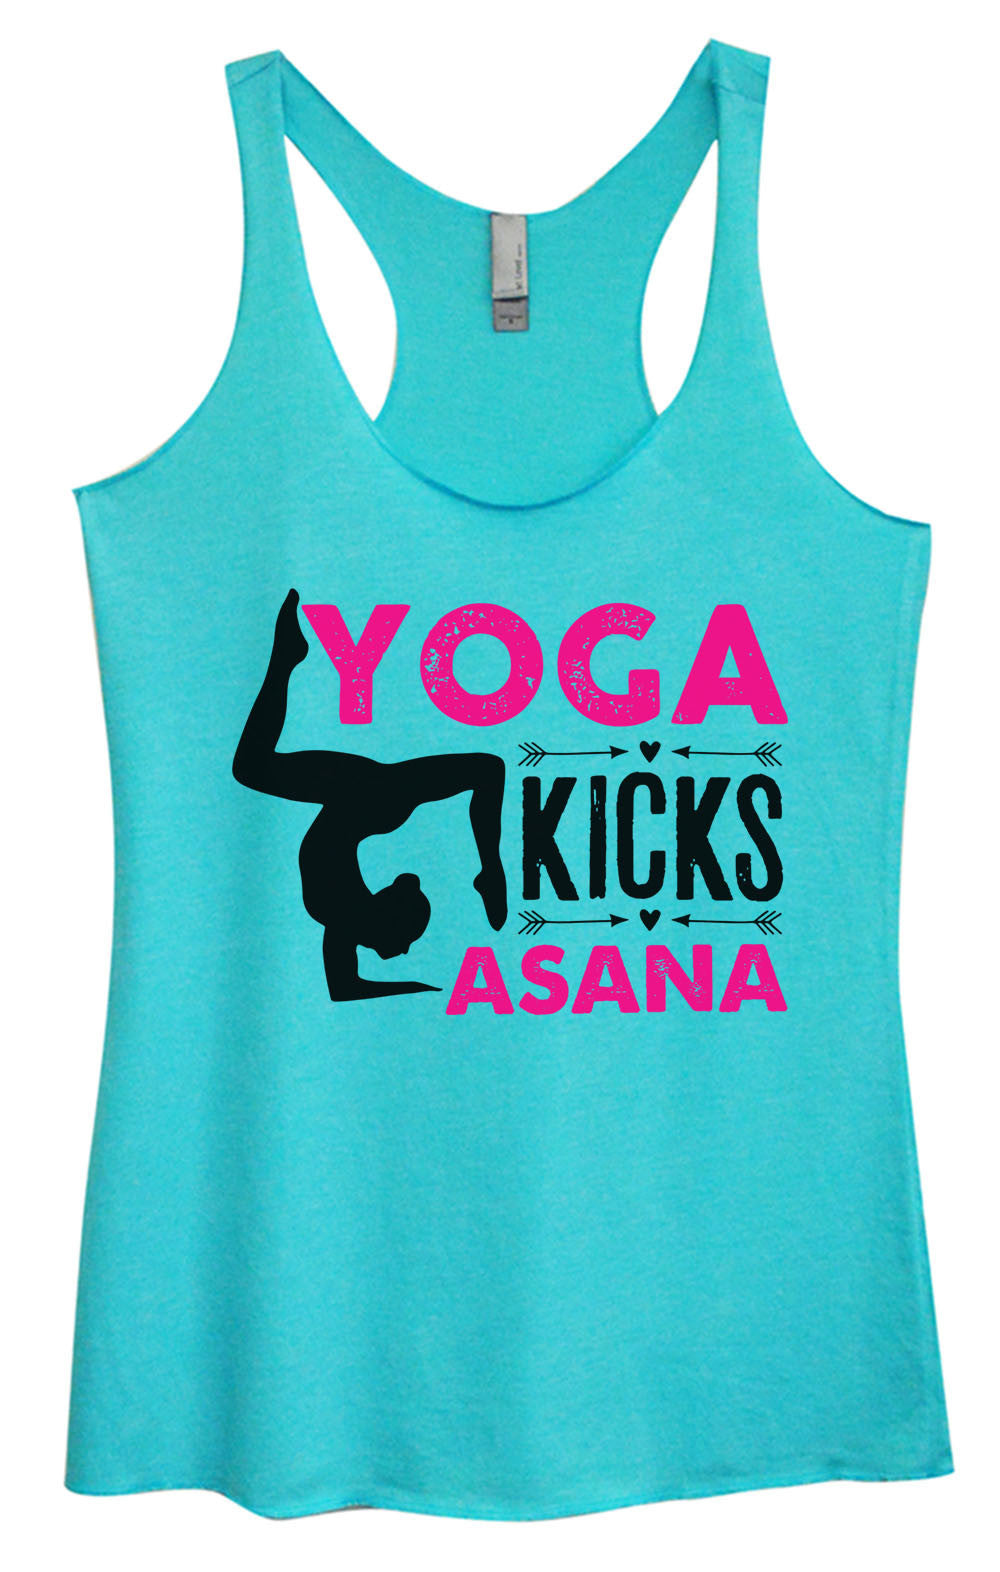 Womens Fashion Triblend Tank Top - Yoga Kicks Asana - Tri-1448 - Funny Shirts Tank Tops Burnouts and Triblends  - 2